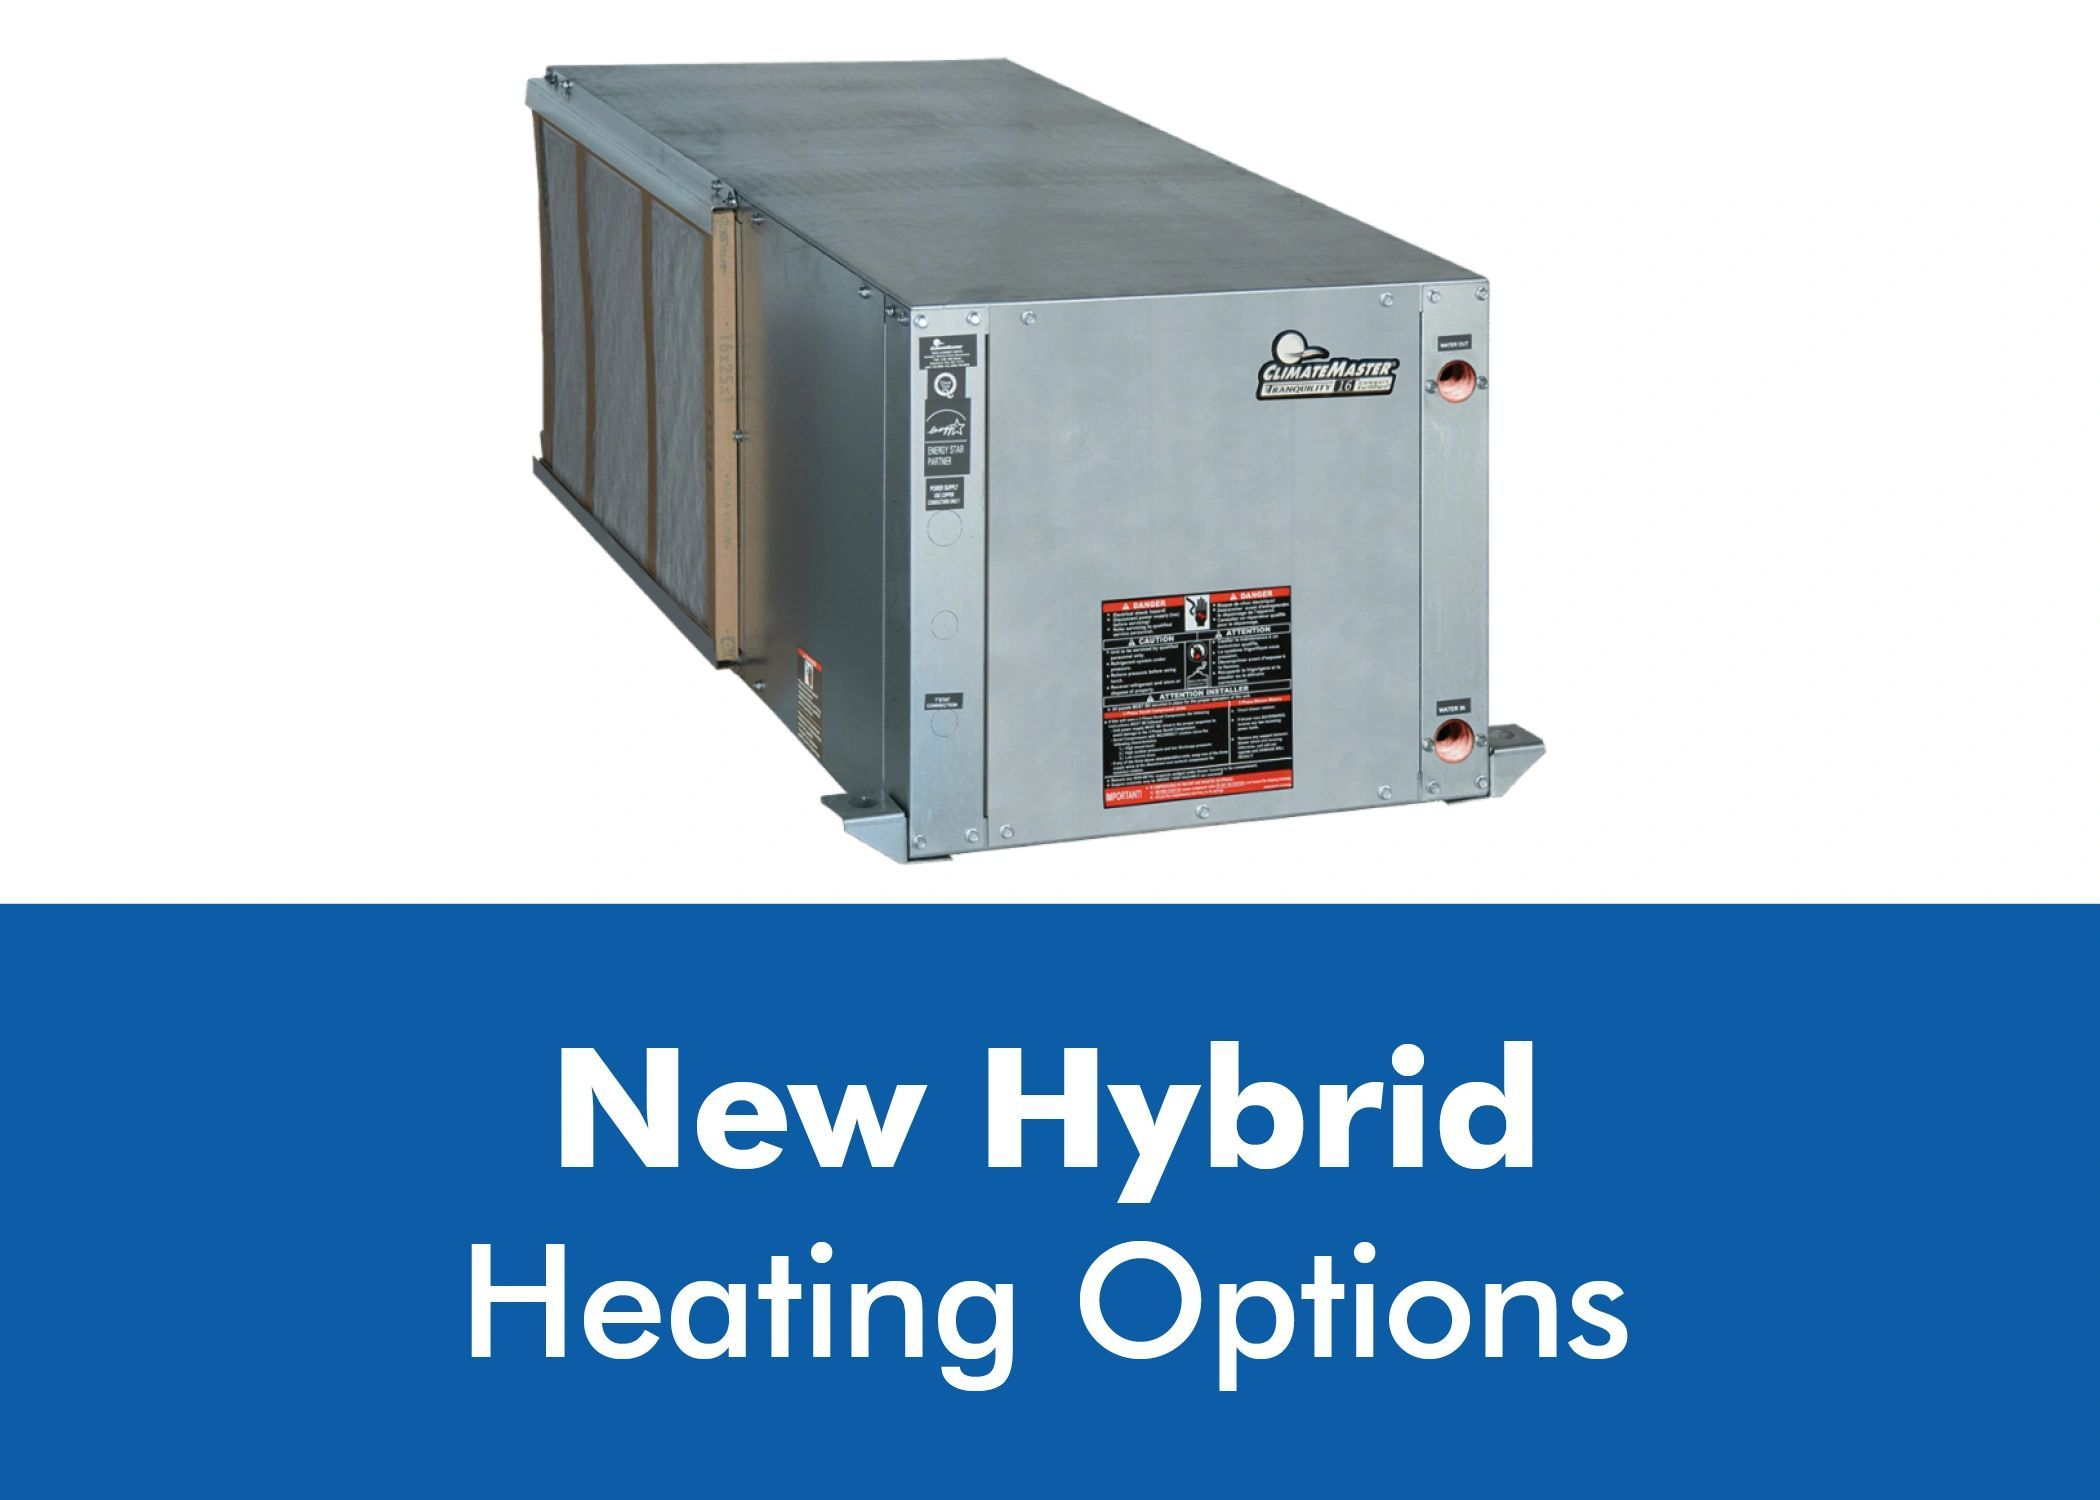 New Hybrid Heating Options For Tr Horizontal Hybrid Hydronic Heating Coil Climatesystems Siouxfalls Hvac